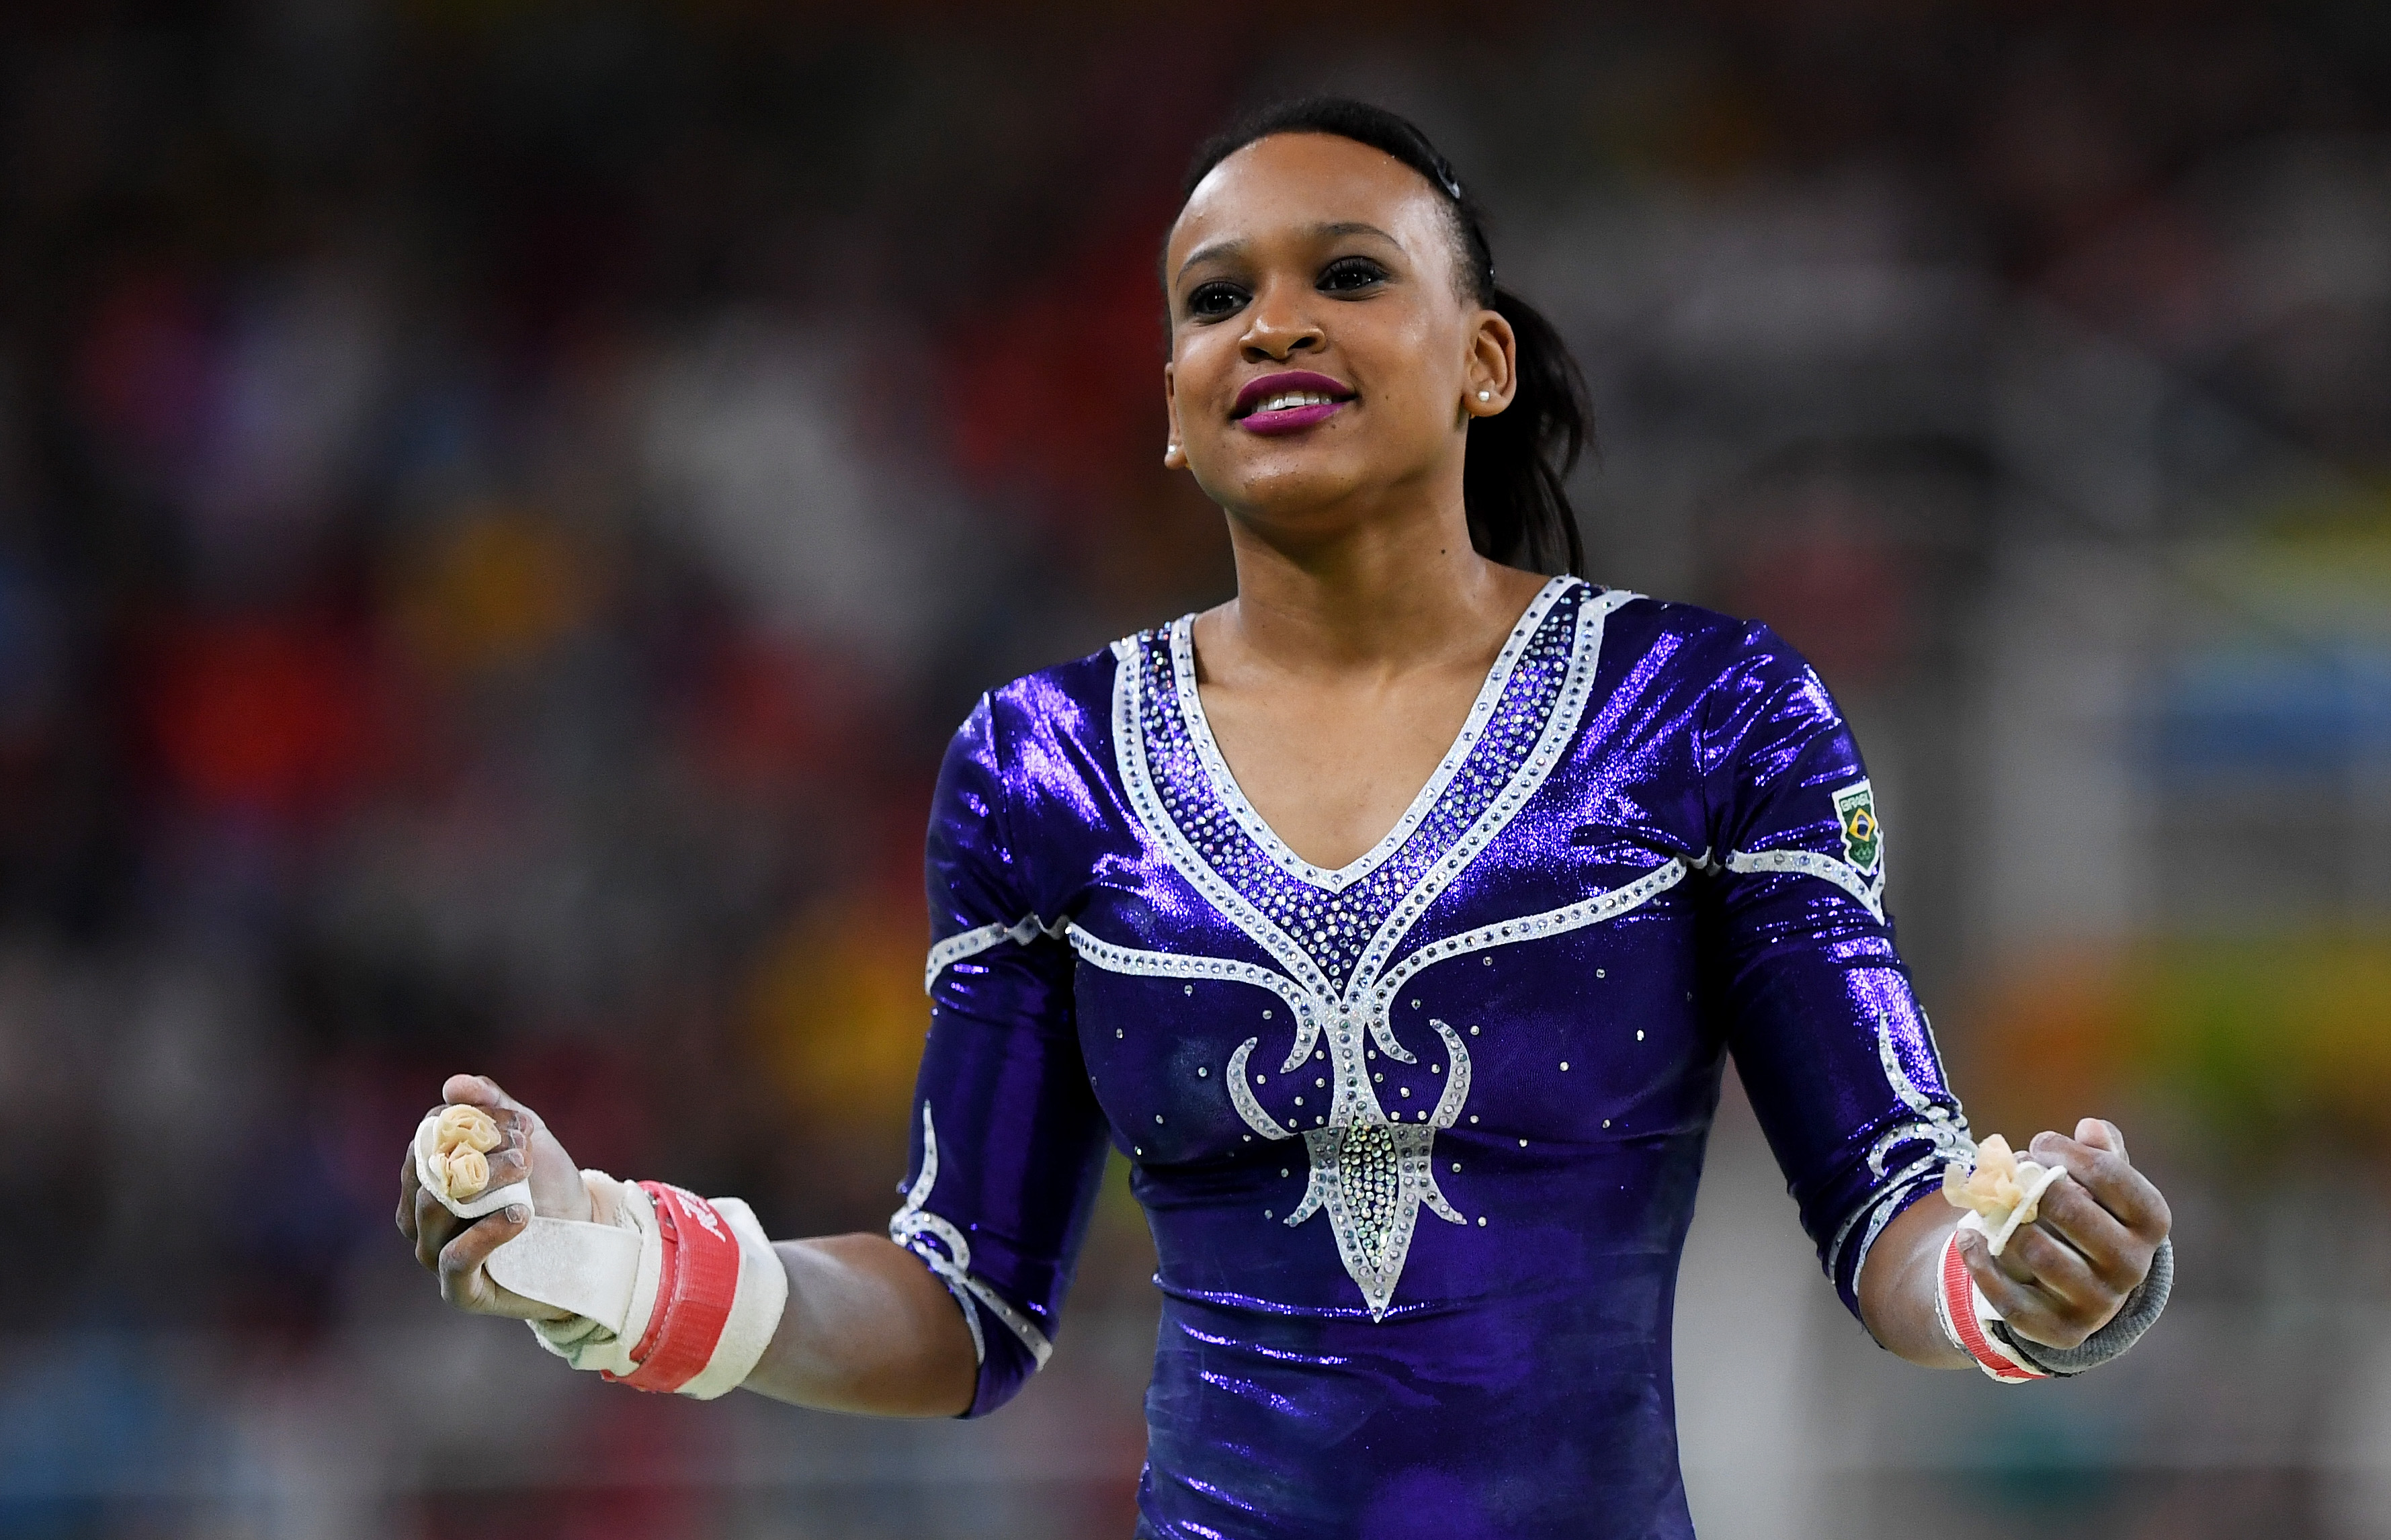 The Gymnast Who Used Beyonce As Her Floor Music Is